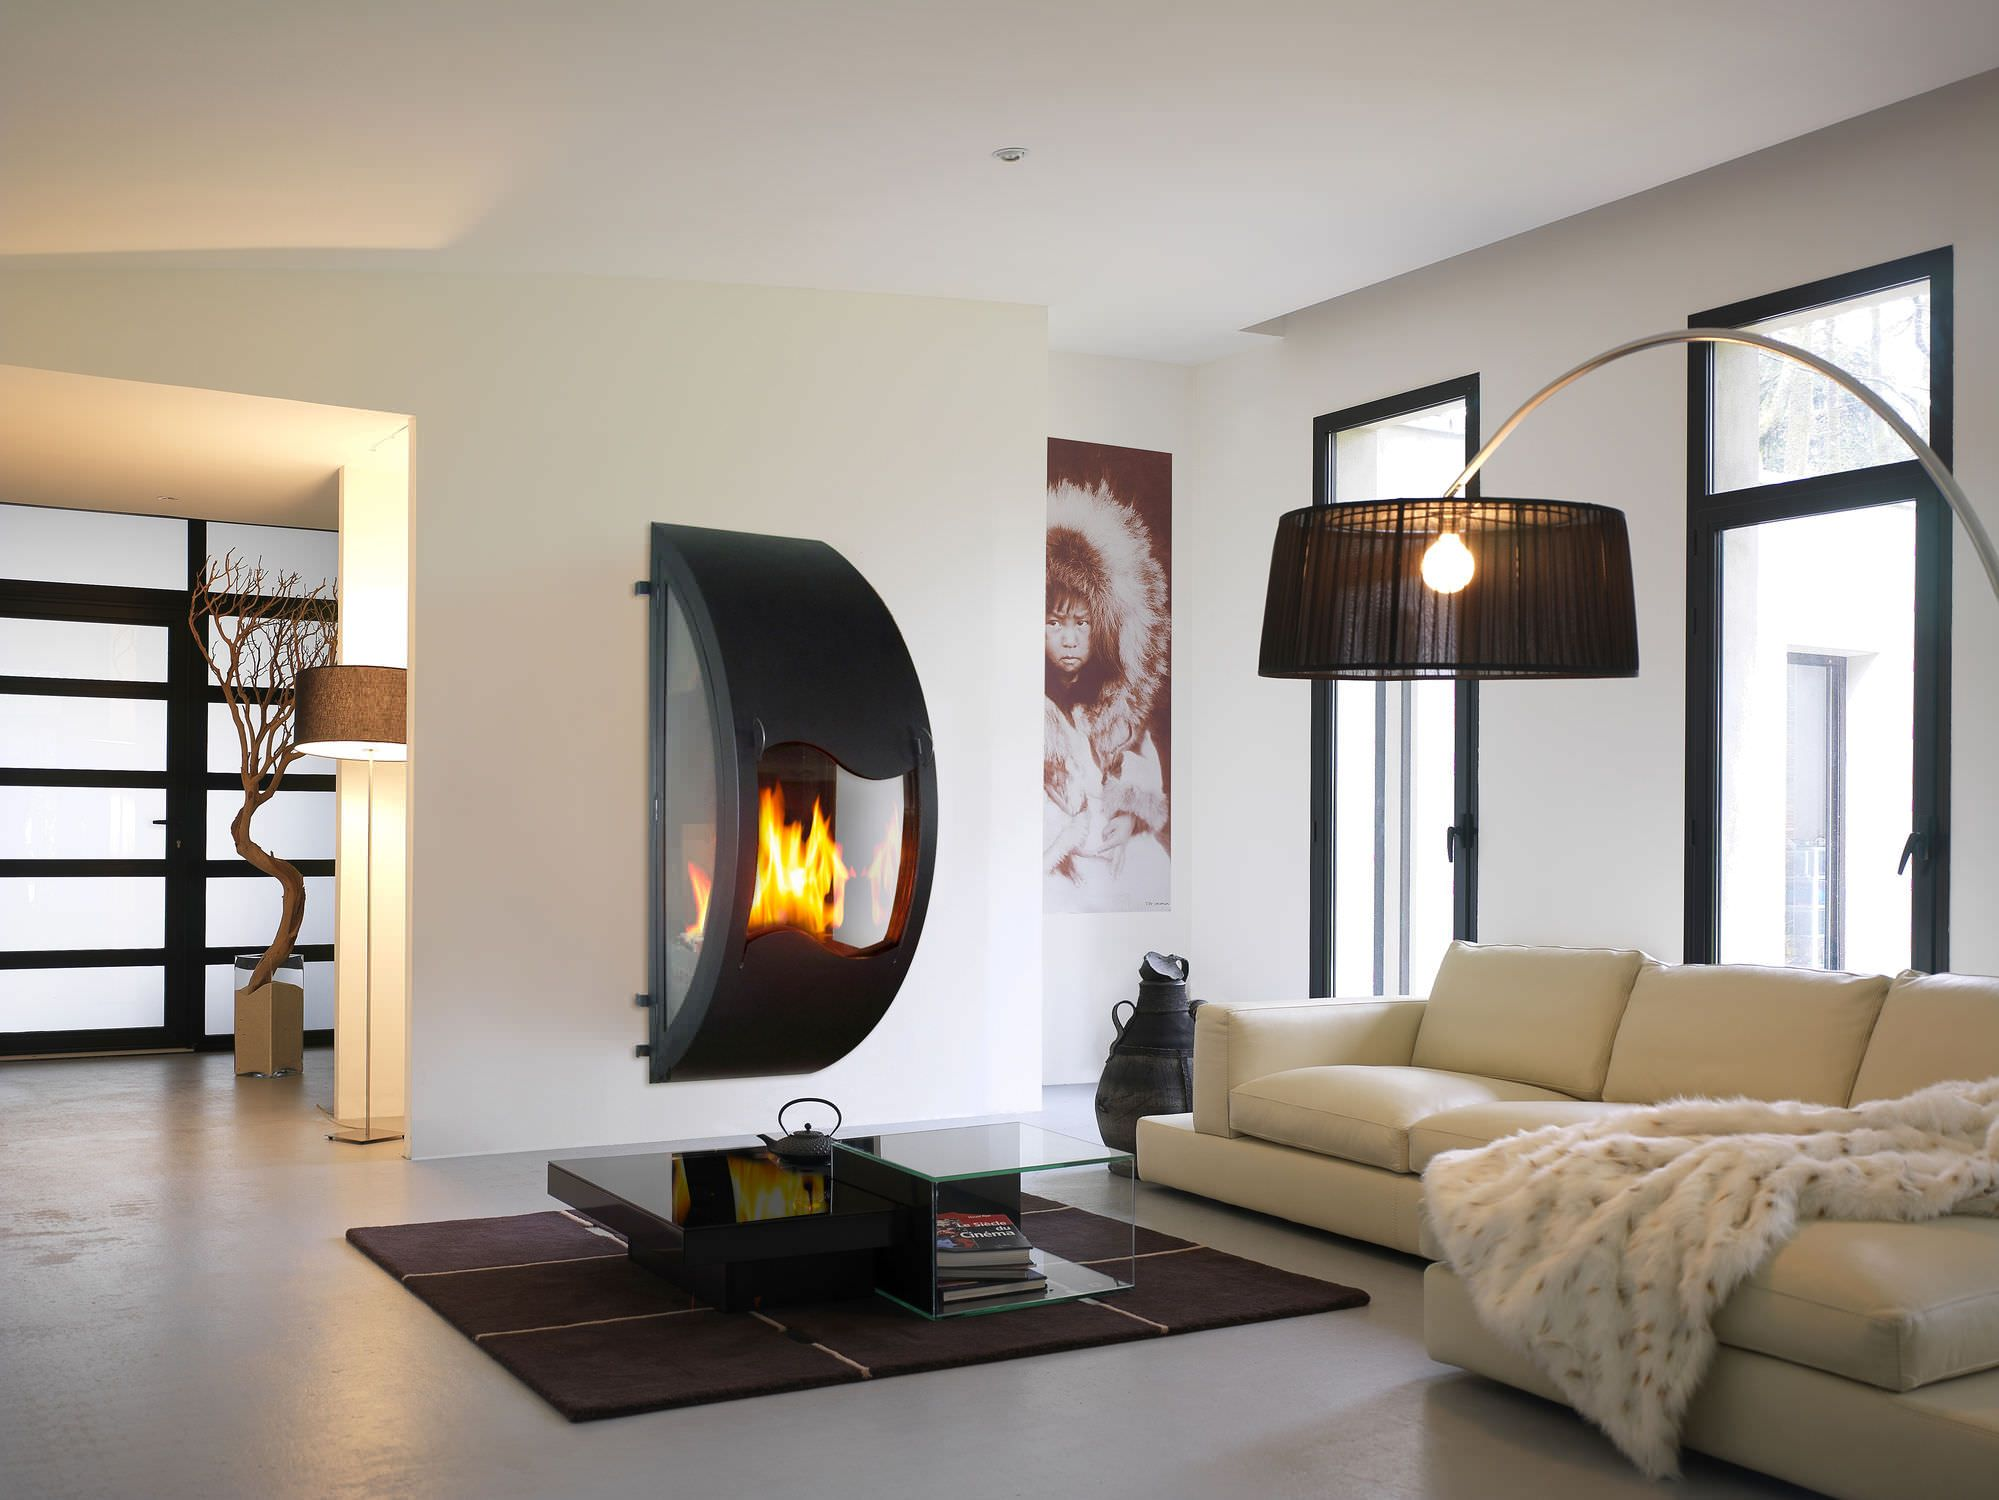 Contemporary Breathtaking Wall Mounted Fireplace Ideas With Amazing Hal  Circle Shaped Gas Closed Steel Hearth Vent